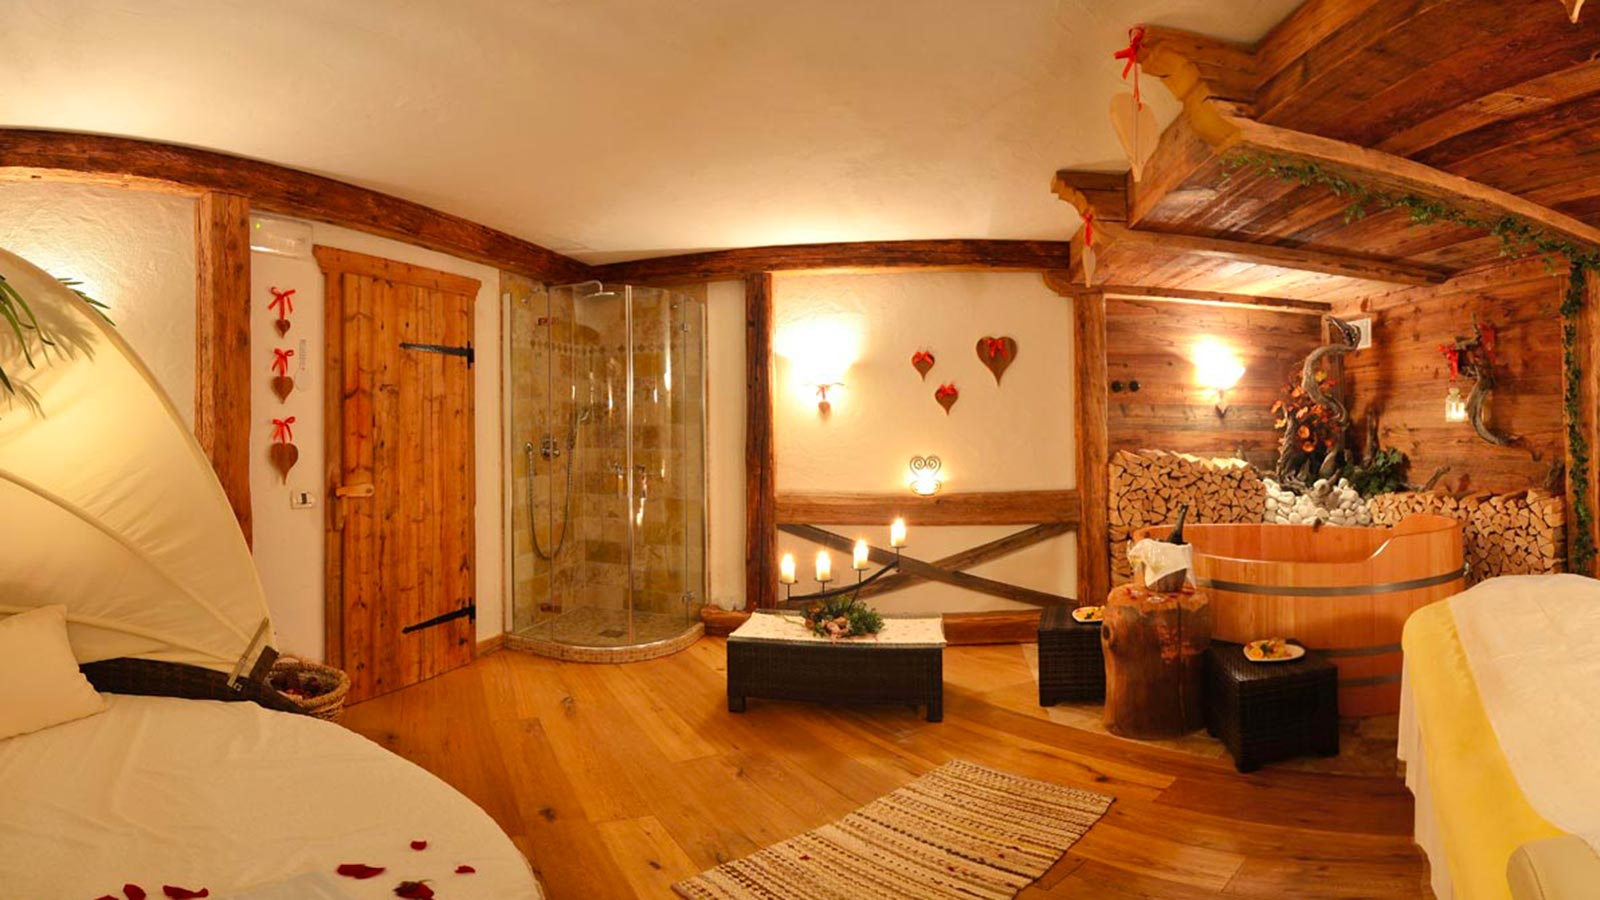 cosy relax area of the Hotel Arkadia, on the left a bed strewn with red petals, on the right a cosy wooden bathtub, in the middle a shower